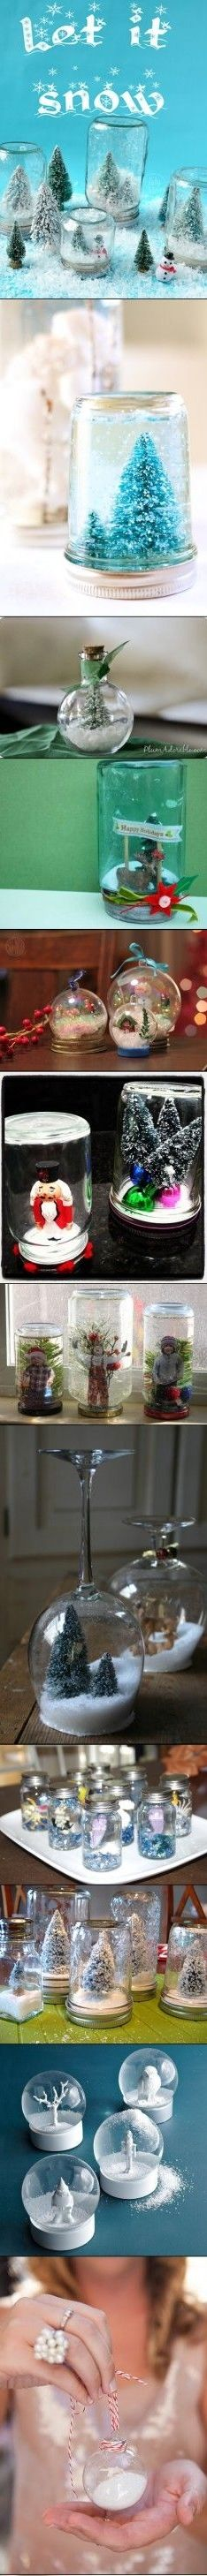 DIY projects For Christmas.